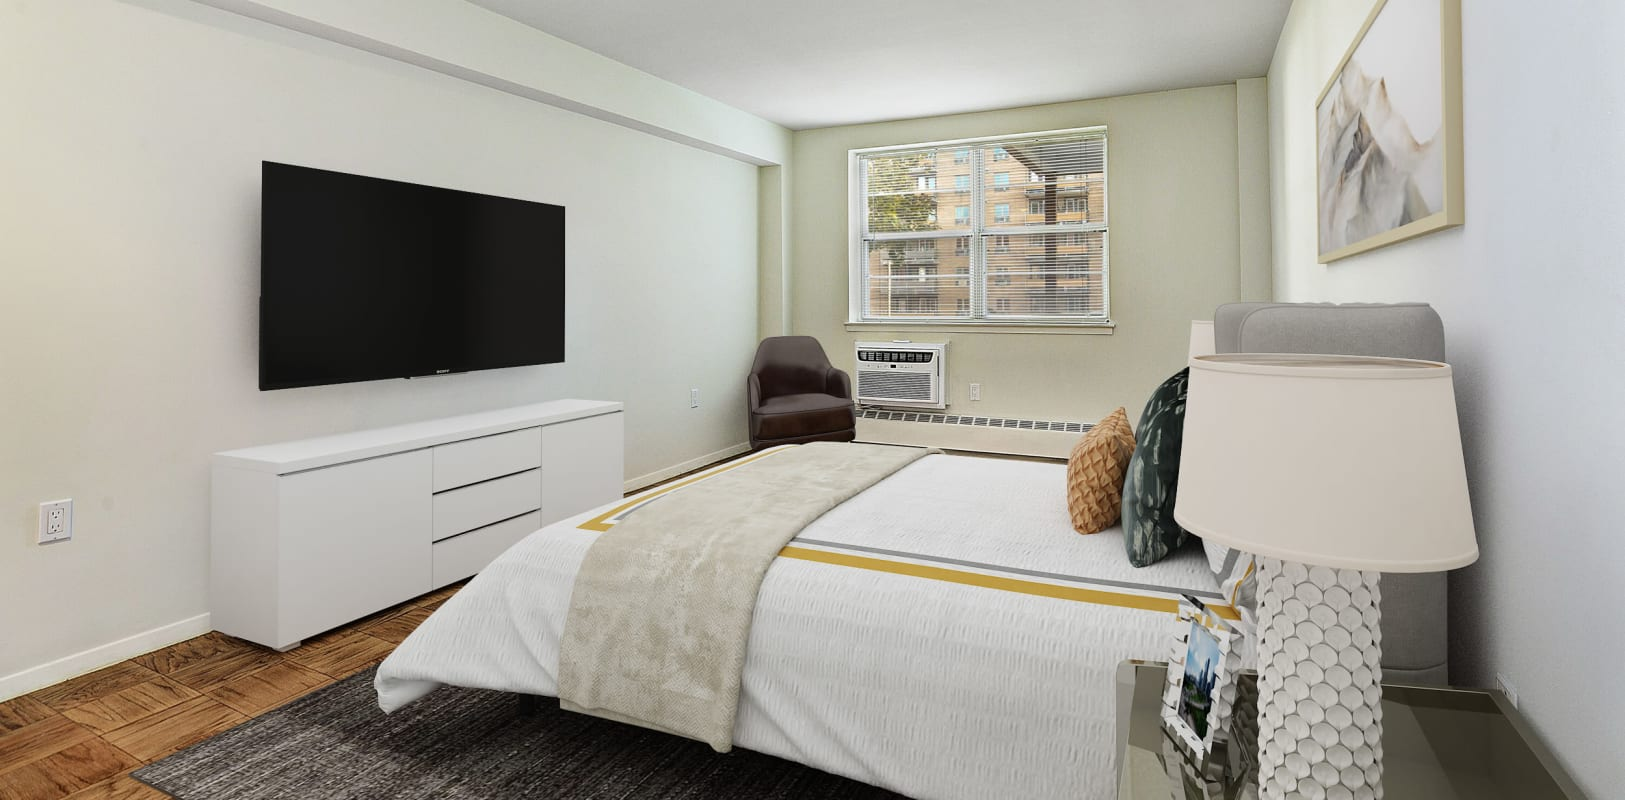 Well decorated bedroom with tv on wall at Hampshire House in Allentown, Pennsylvania